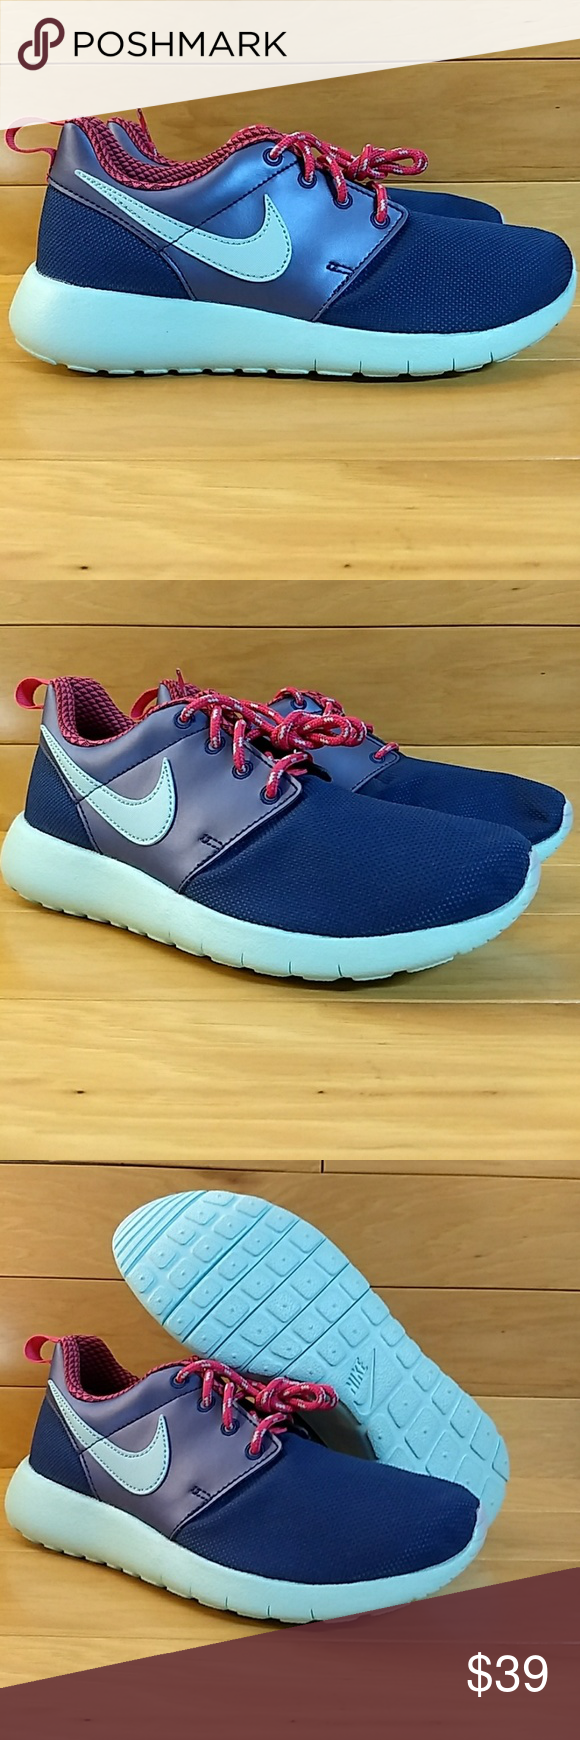 64e546ab135a Nike Roshe One GS 5Y Blue Pink Youth Sneaker Item  Nike Roshe One GS Style